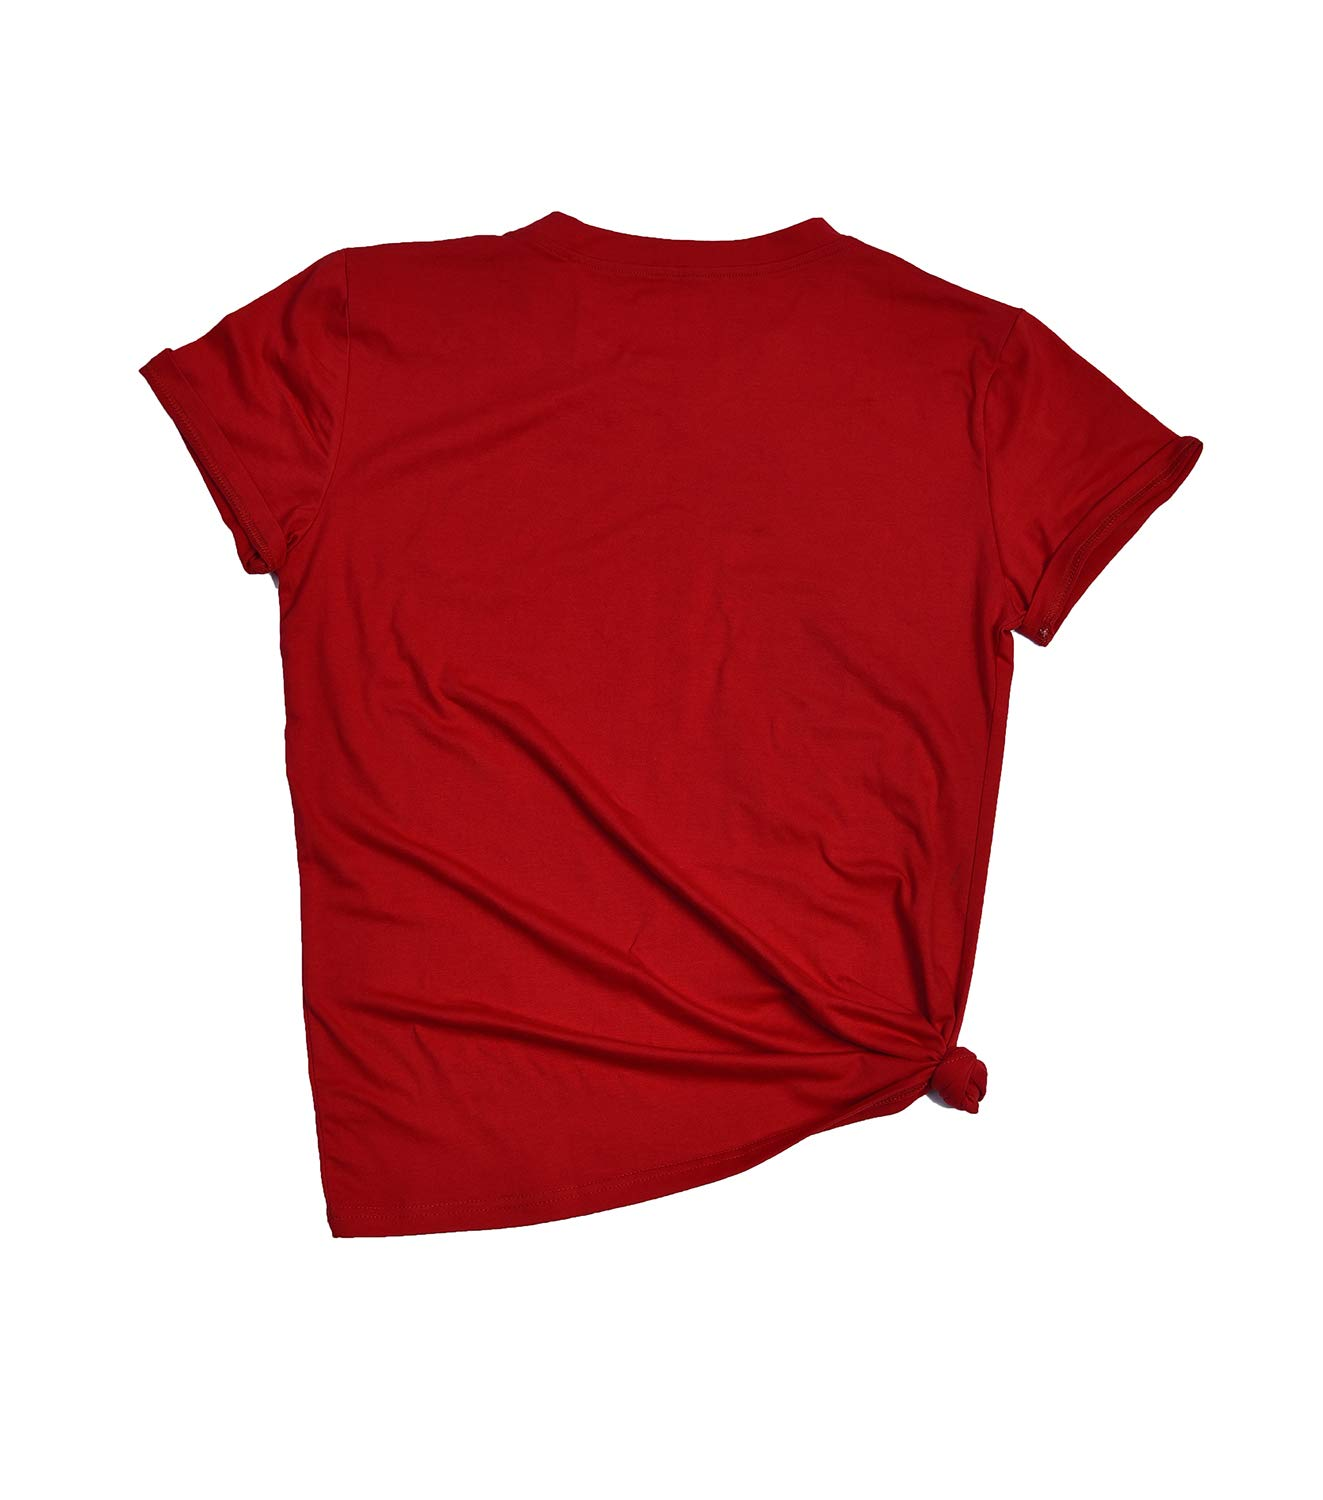 Eanklosco Merry Christmas T-Shirt Women\'s Casual Letter Tops Short Sleeve Shirts(Red,XL)